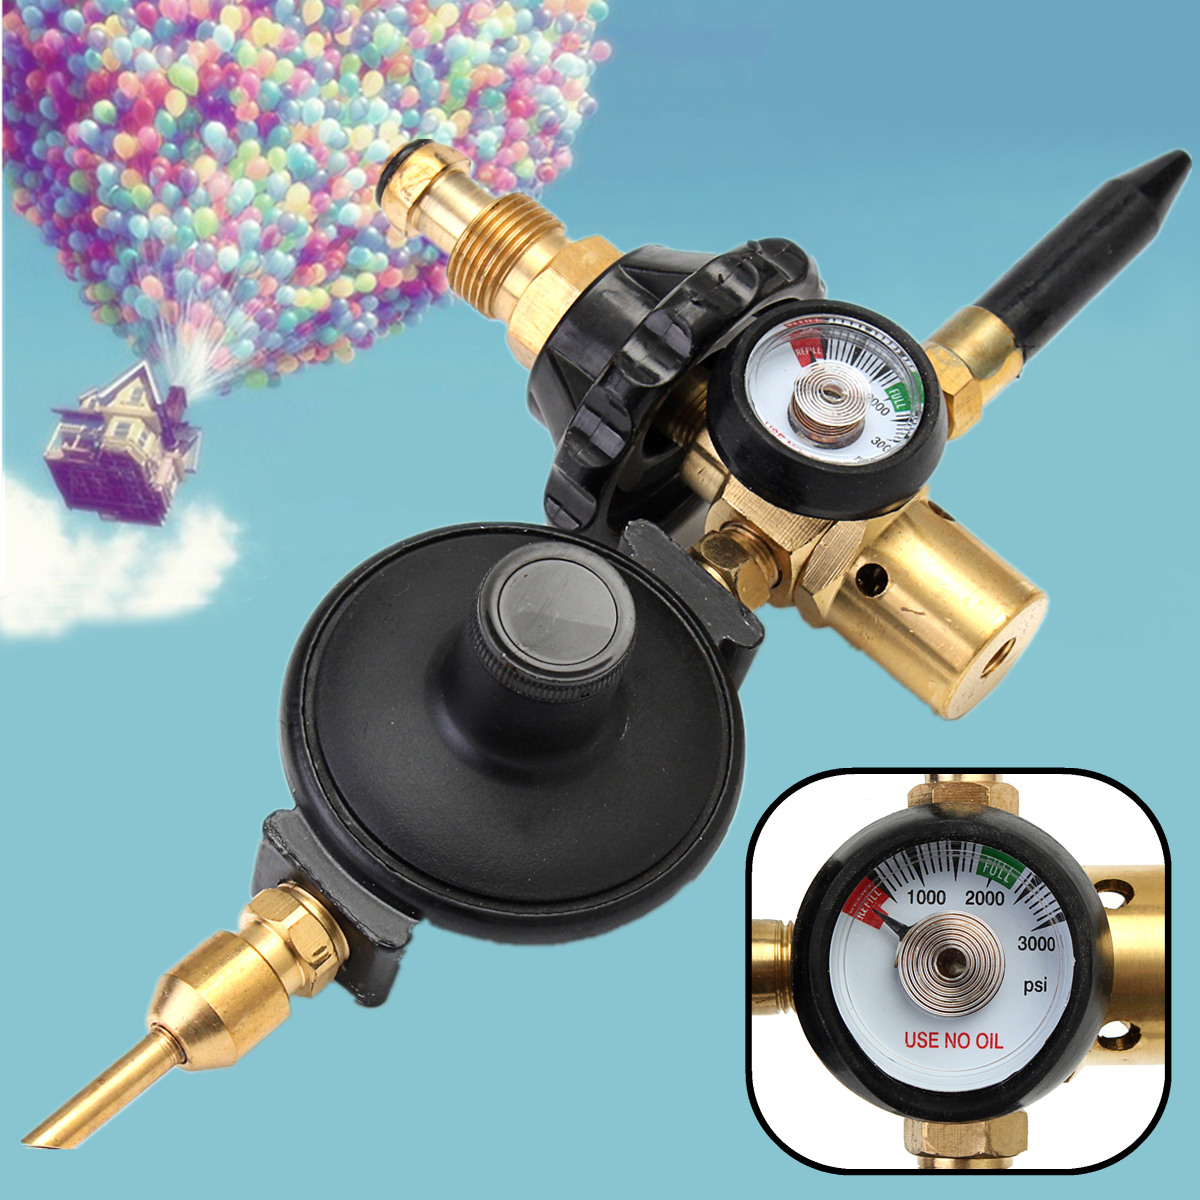 Helium Latex Balloon Inflator Air Flow Regulator Meter Valve Gauge For G5/8 g5 8 14h f oxygen regulator welding accessories